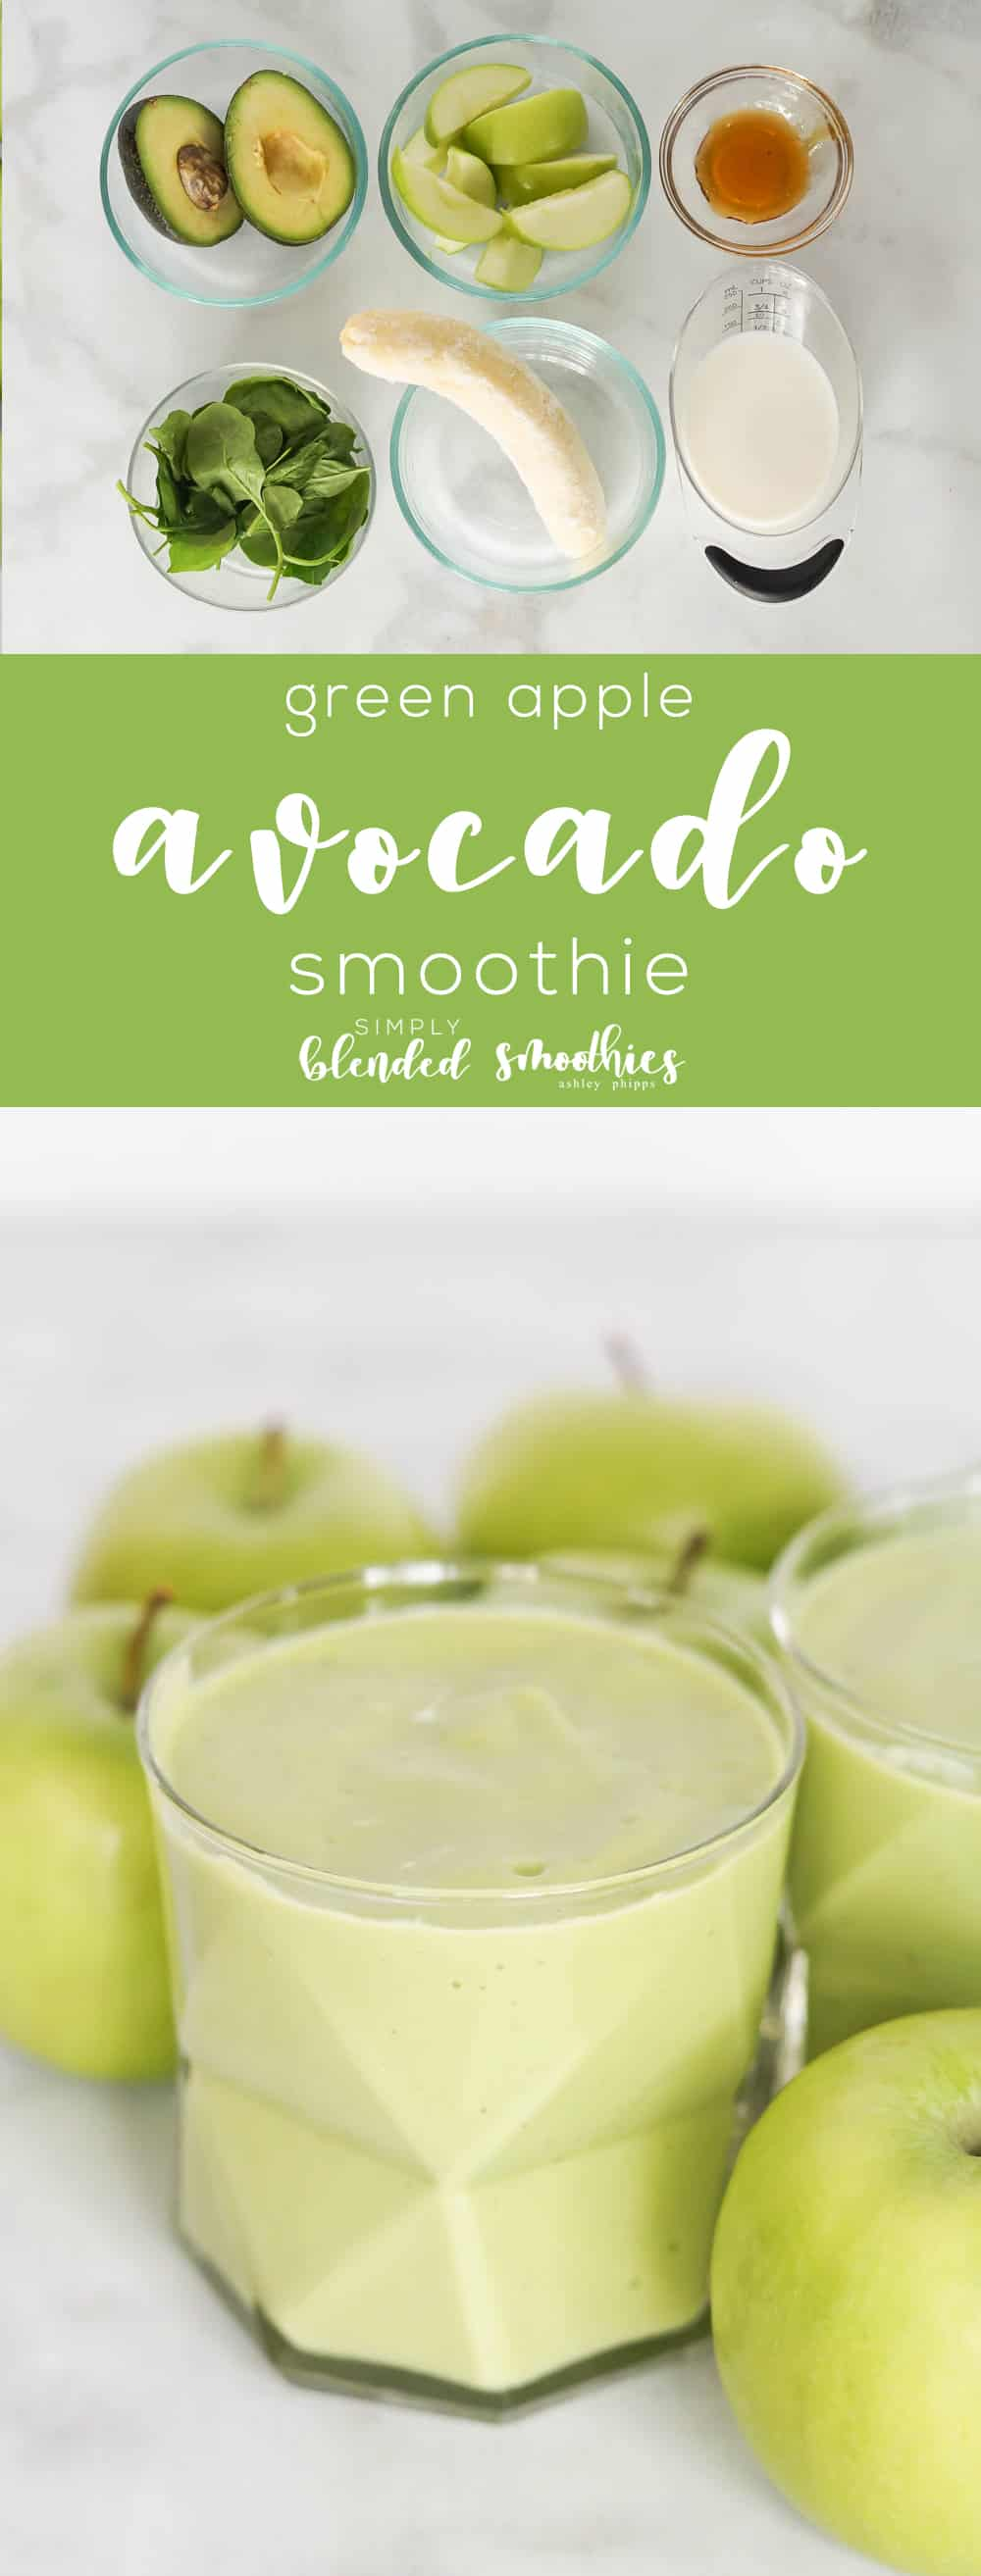 Green Apple and Avocado Smoothie - this deliciously smooth and tart smoothie